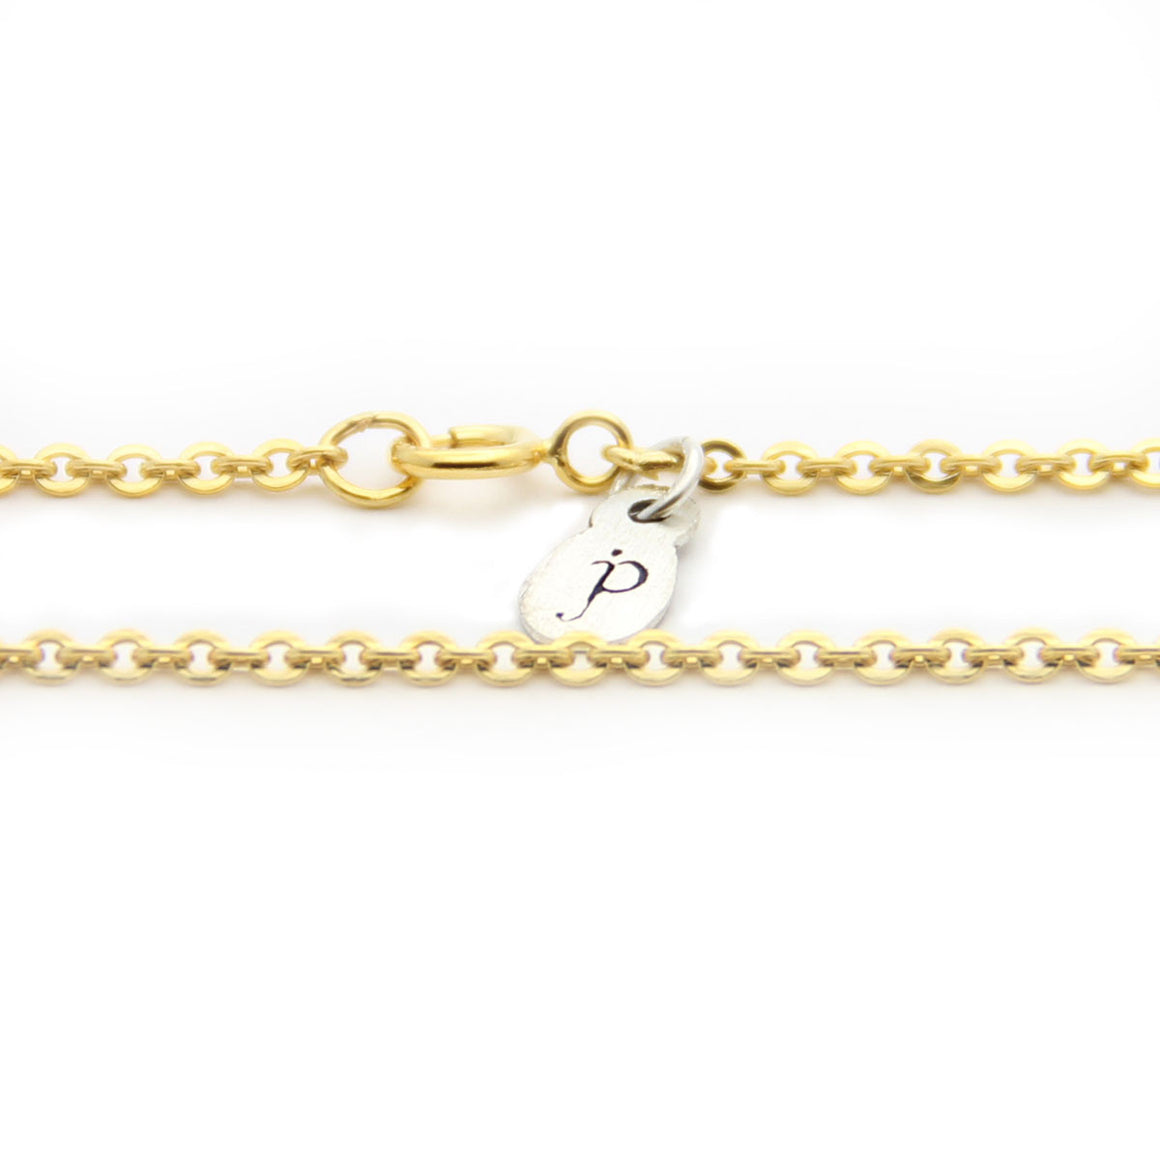 gold cable chain necklace, gold chain length options, jewelry add ons, personalized, jenny present®